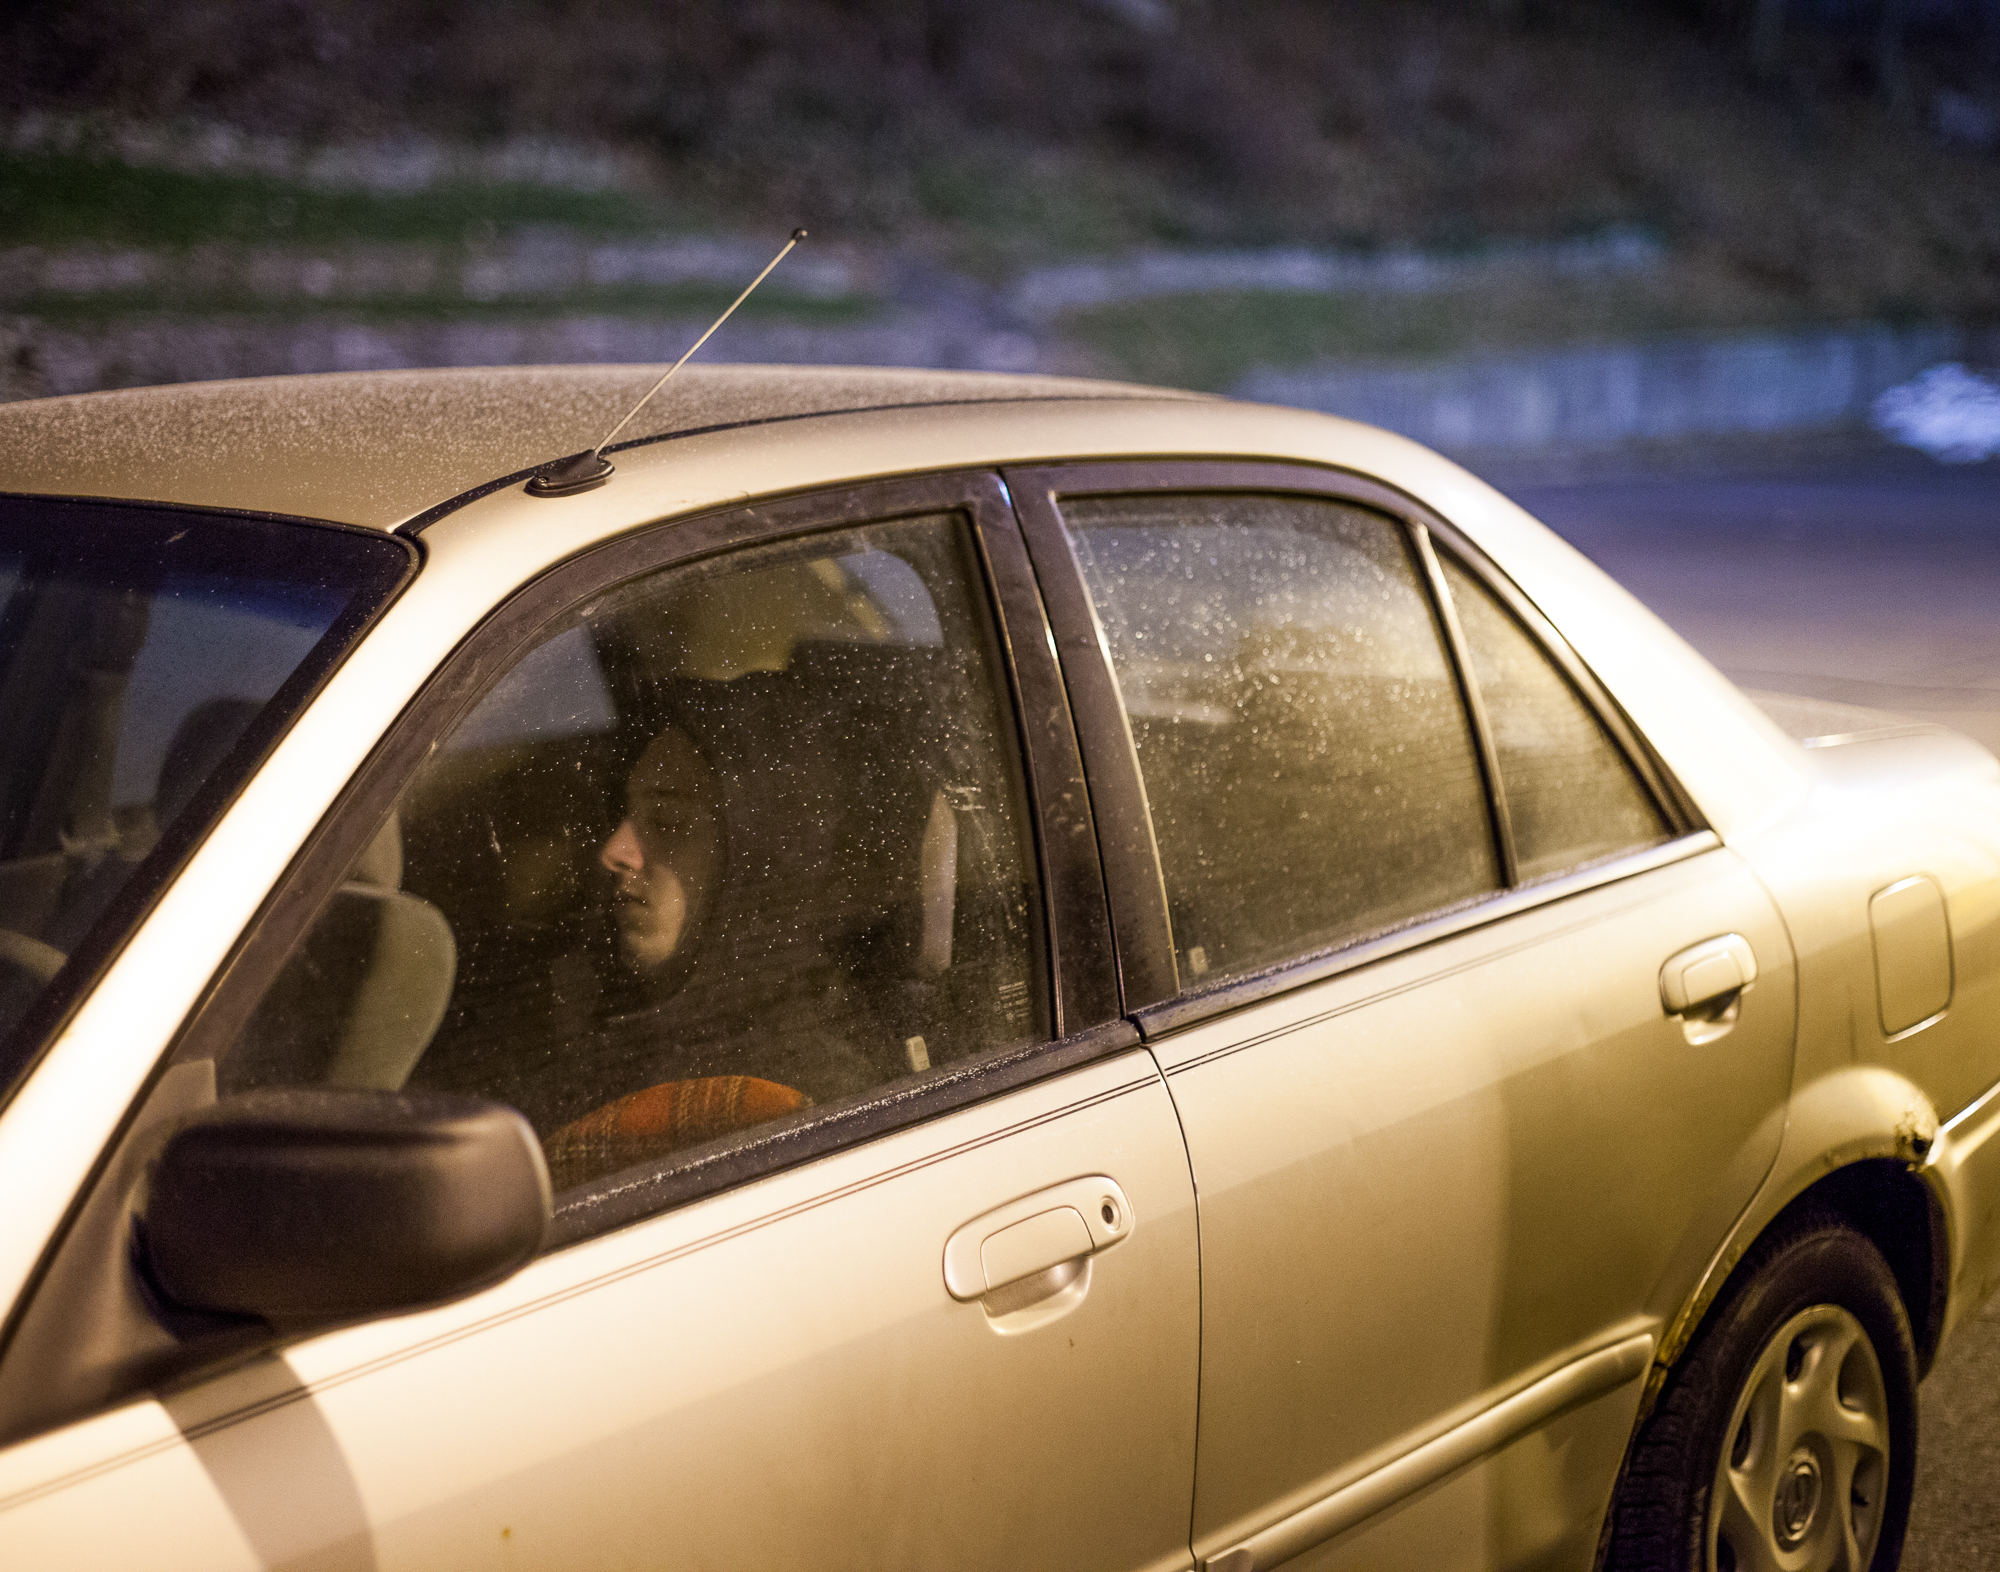 Runaway and homeless youth fortunate enough to own a car use it as a place to sleep as well as a mode of transportation if they have money for gas.